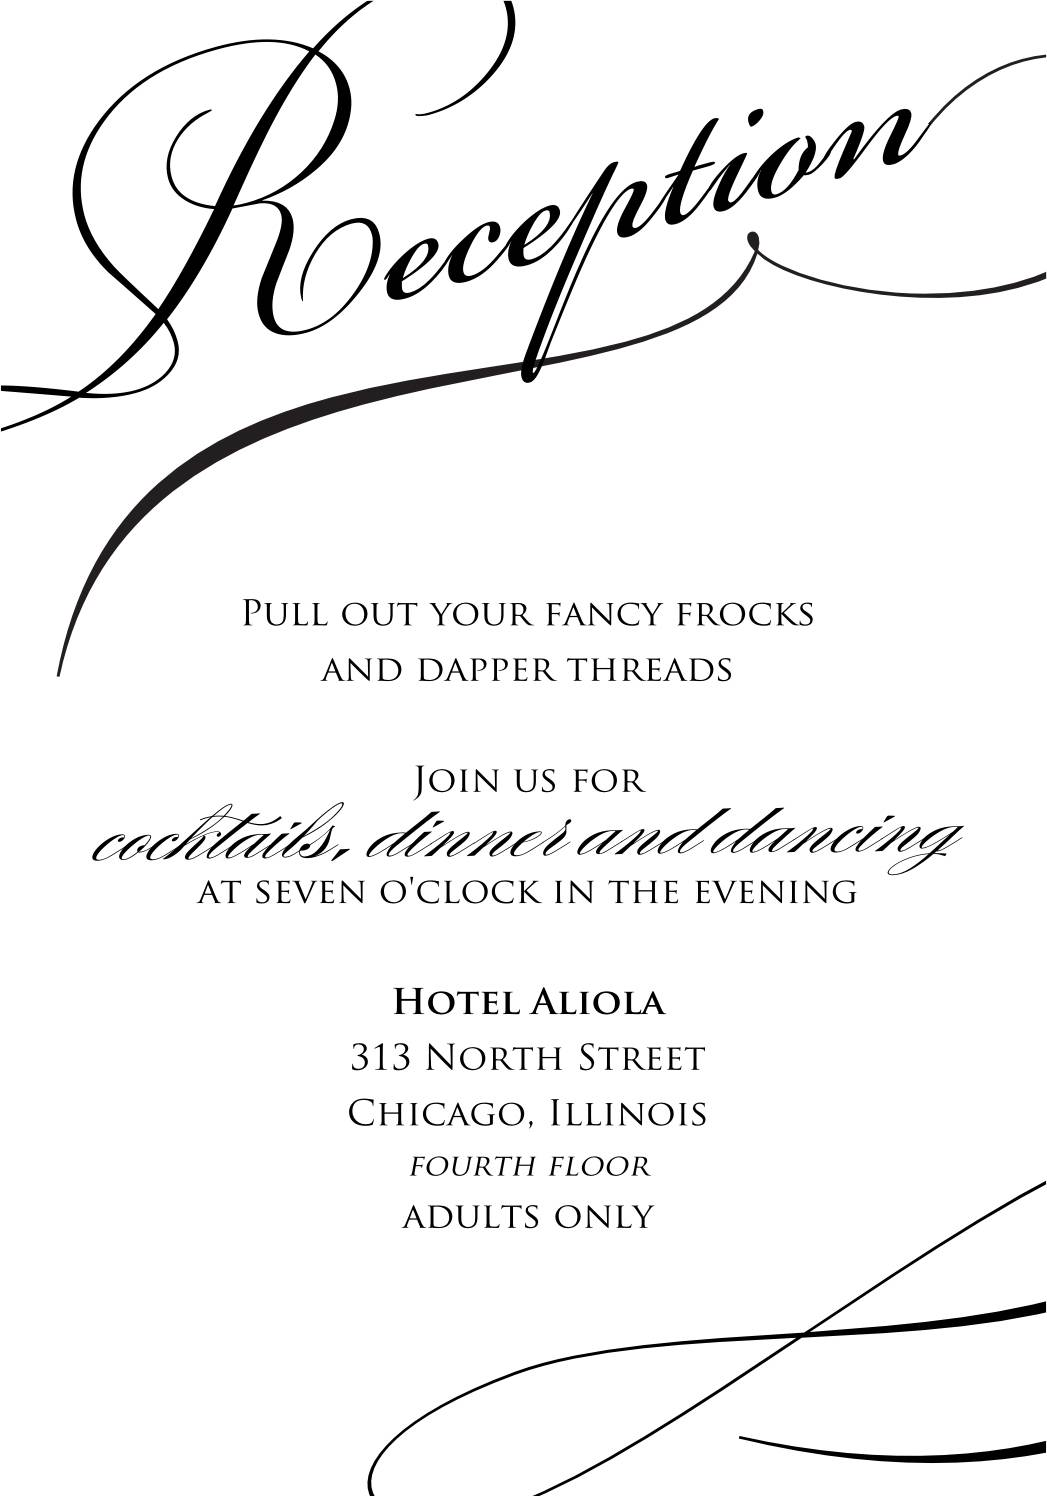 Reception Invitation Samples